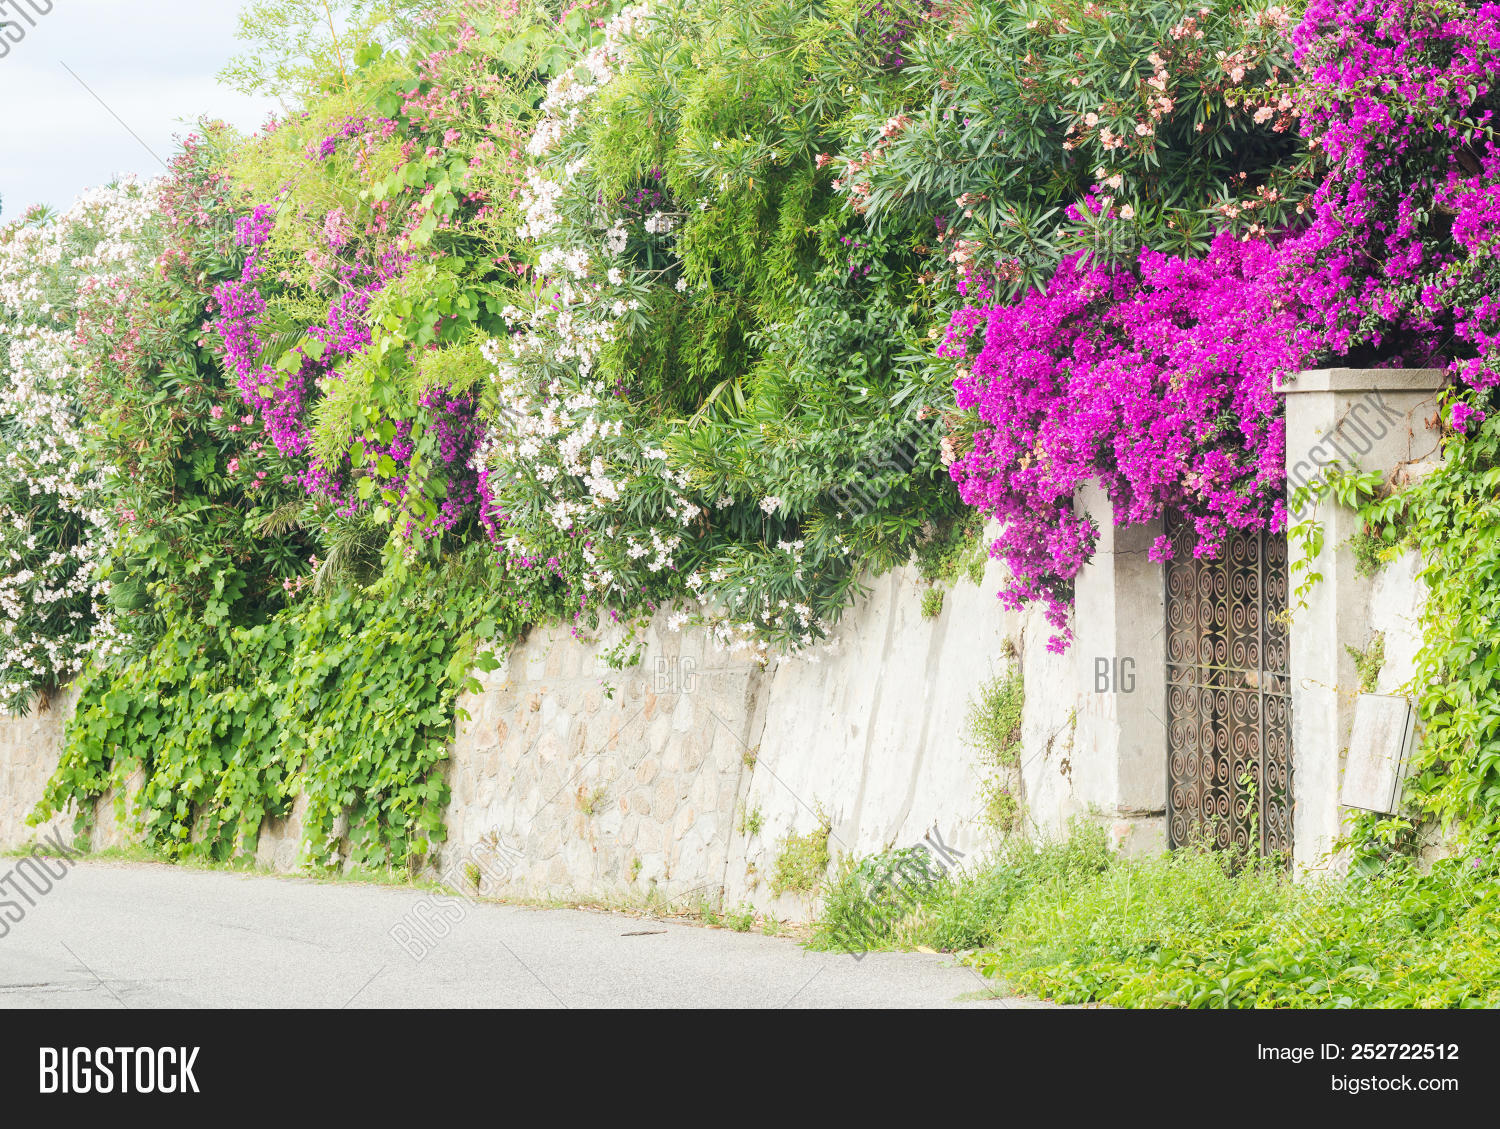 aegean,alley,architectural,architecture,background,balcony,beautiful,beauty,bloom,blooming,blossom,bougainvillea,branch,bright,building,bush,color,colorful,culture,decoration,door,europe,flora,floral,flower,garden,greece,greek,green,house,leaf,magenta,mediterranean,natural,nature,petal,pink,plant,purple,red,spring,summer,tourism,town,traditional,travel,tree,tropical,white,window